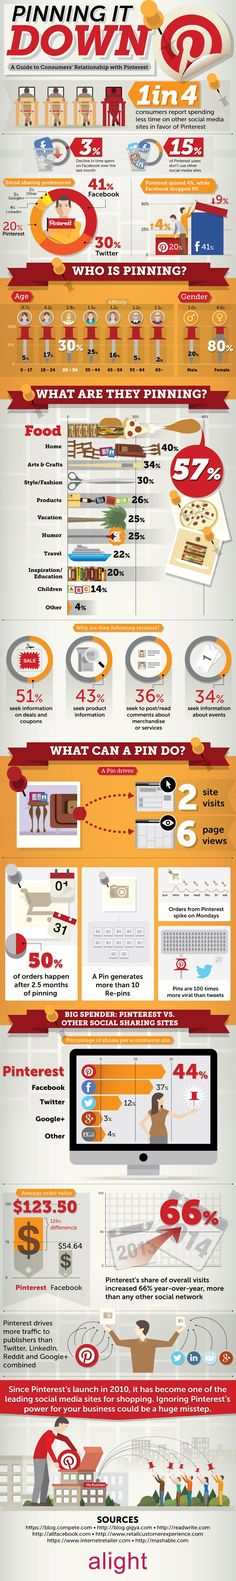 Incorporating #Pinterest Into Your Marketing Strategy #socialmedia #infographic #marketing #business